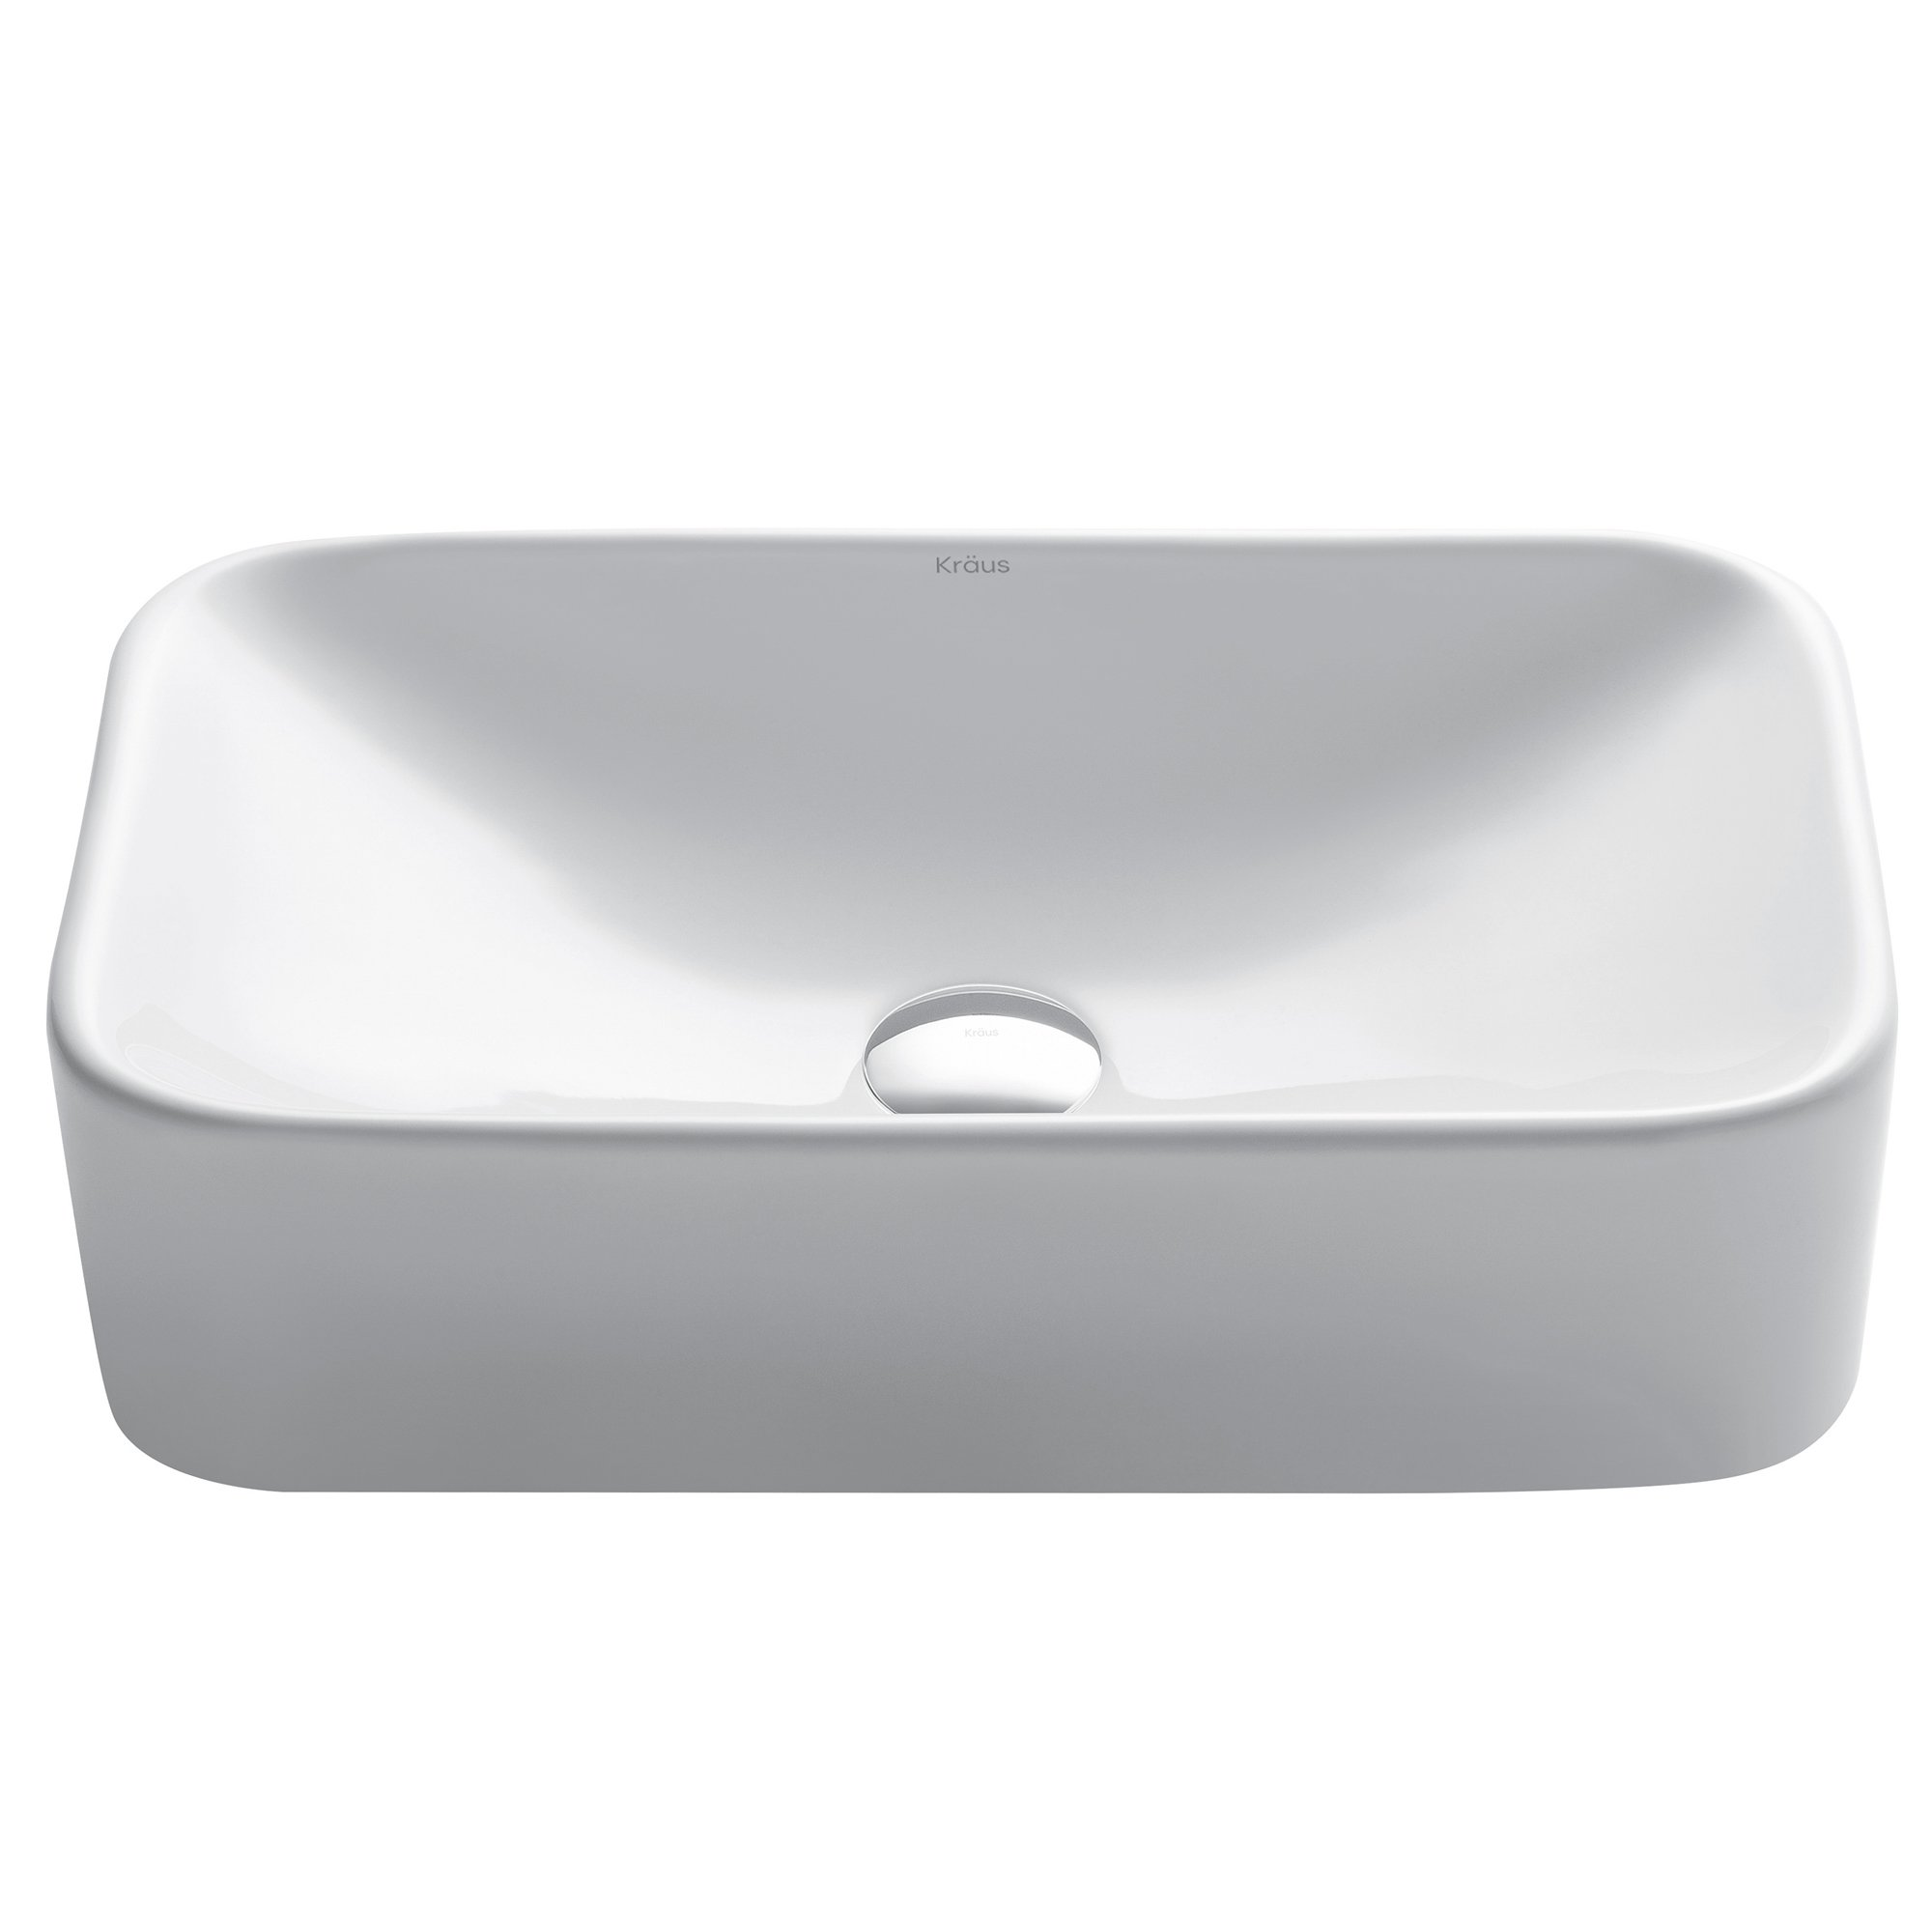 Kraus KCV-122 White Rectangular Ceramic Bathroom Sink by Kraus